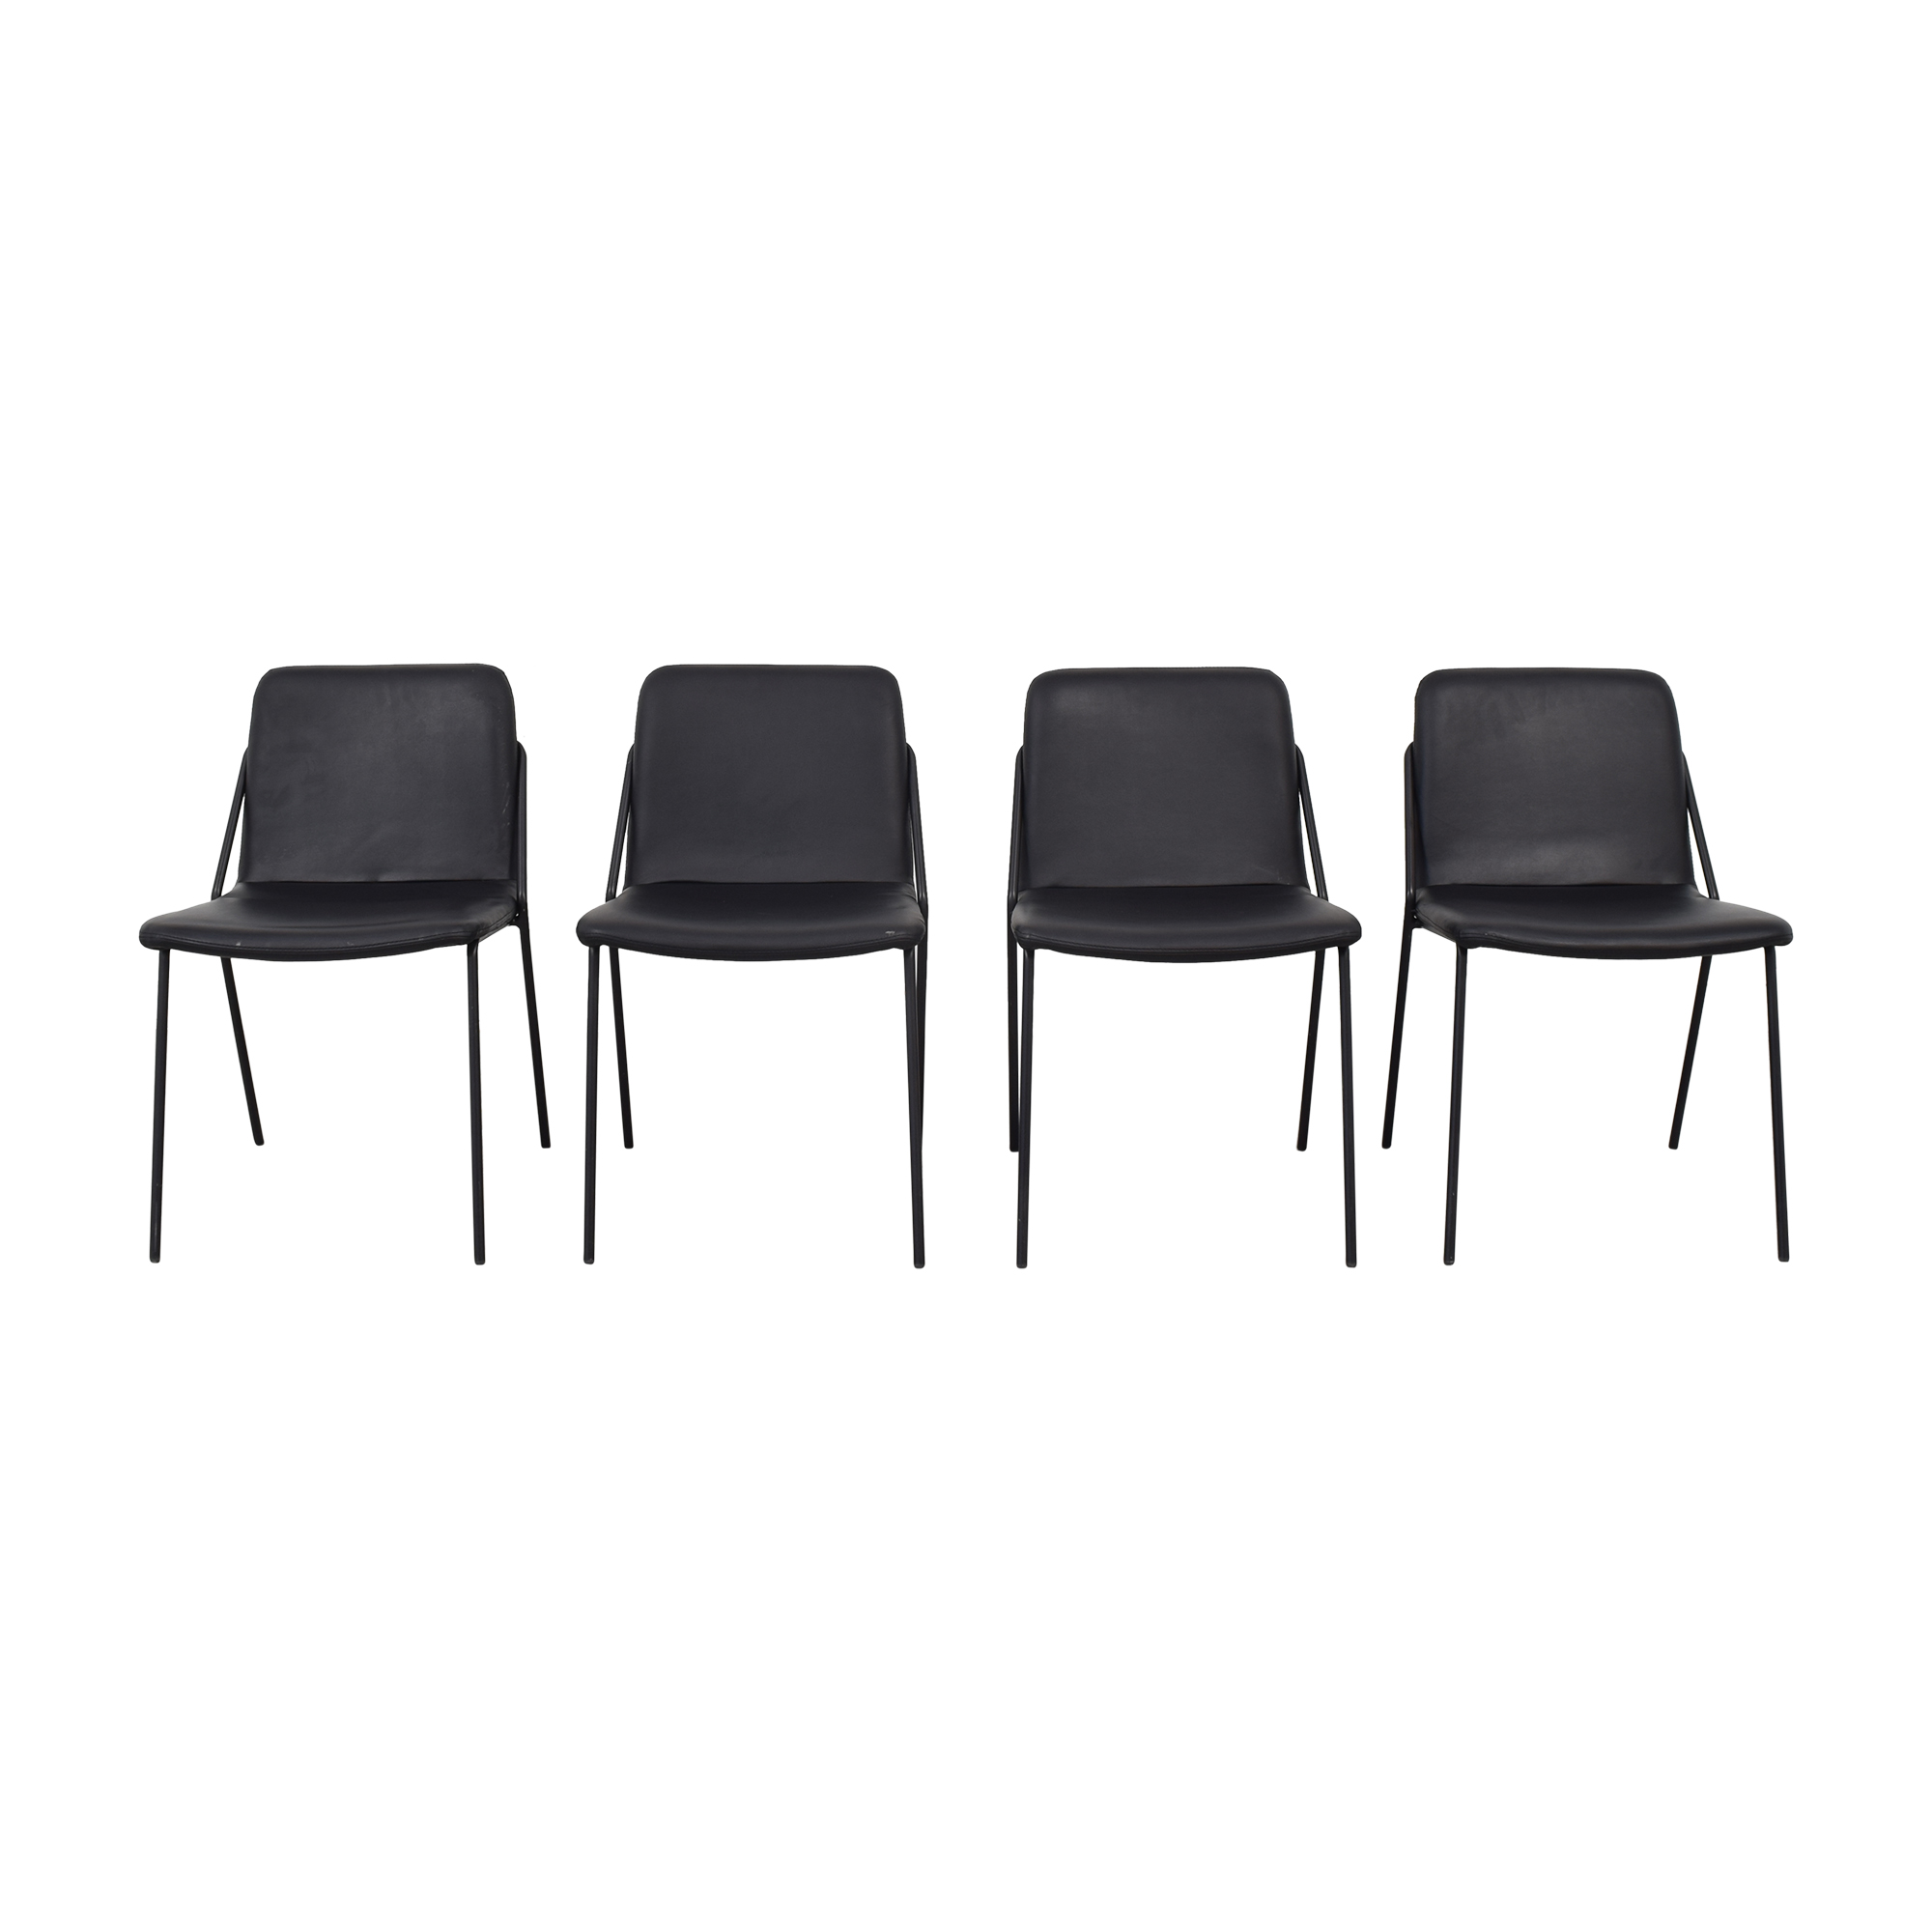 m.a.d. m.a.d. Black Sling Spholstered Chairs black